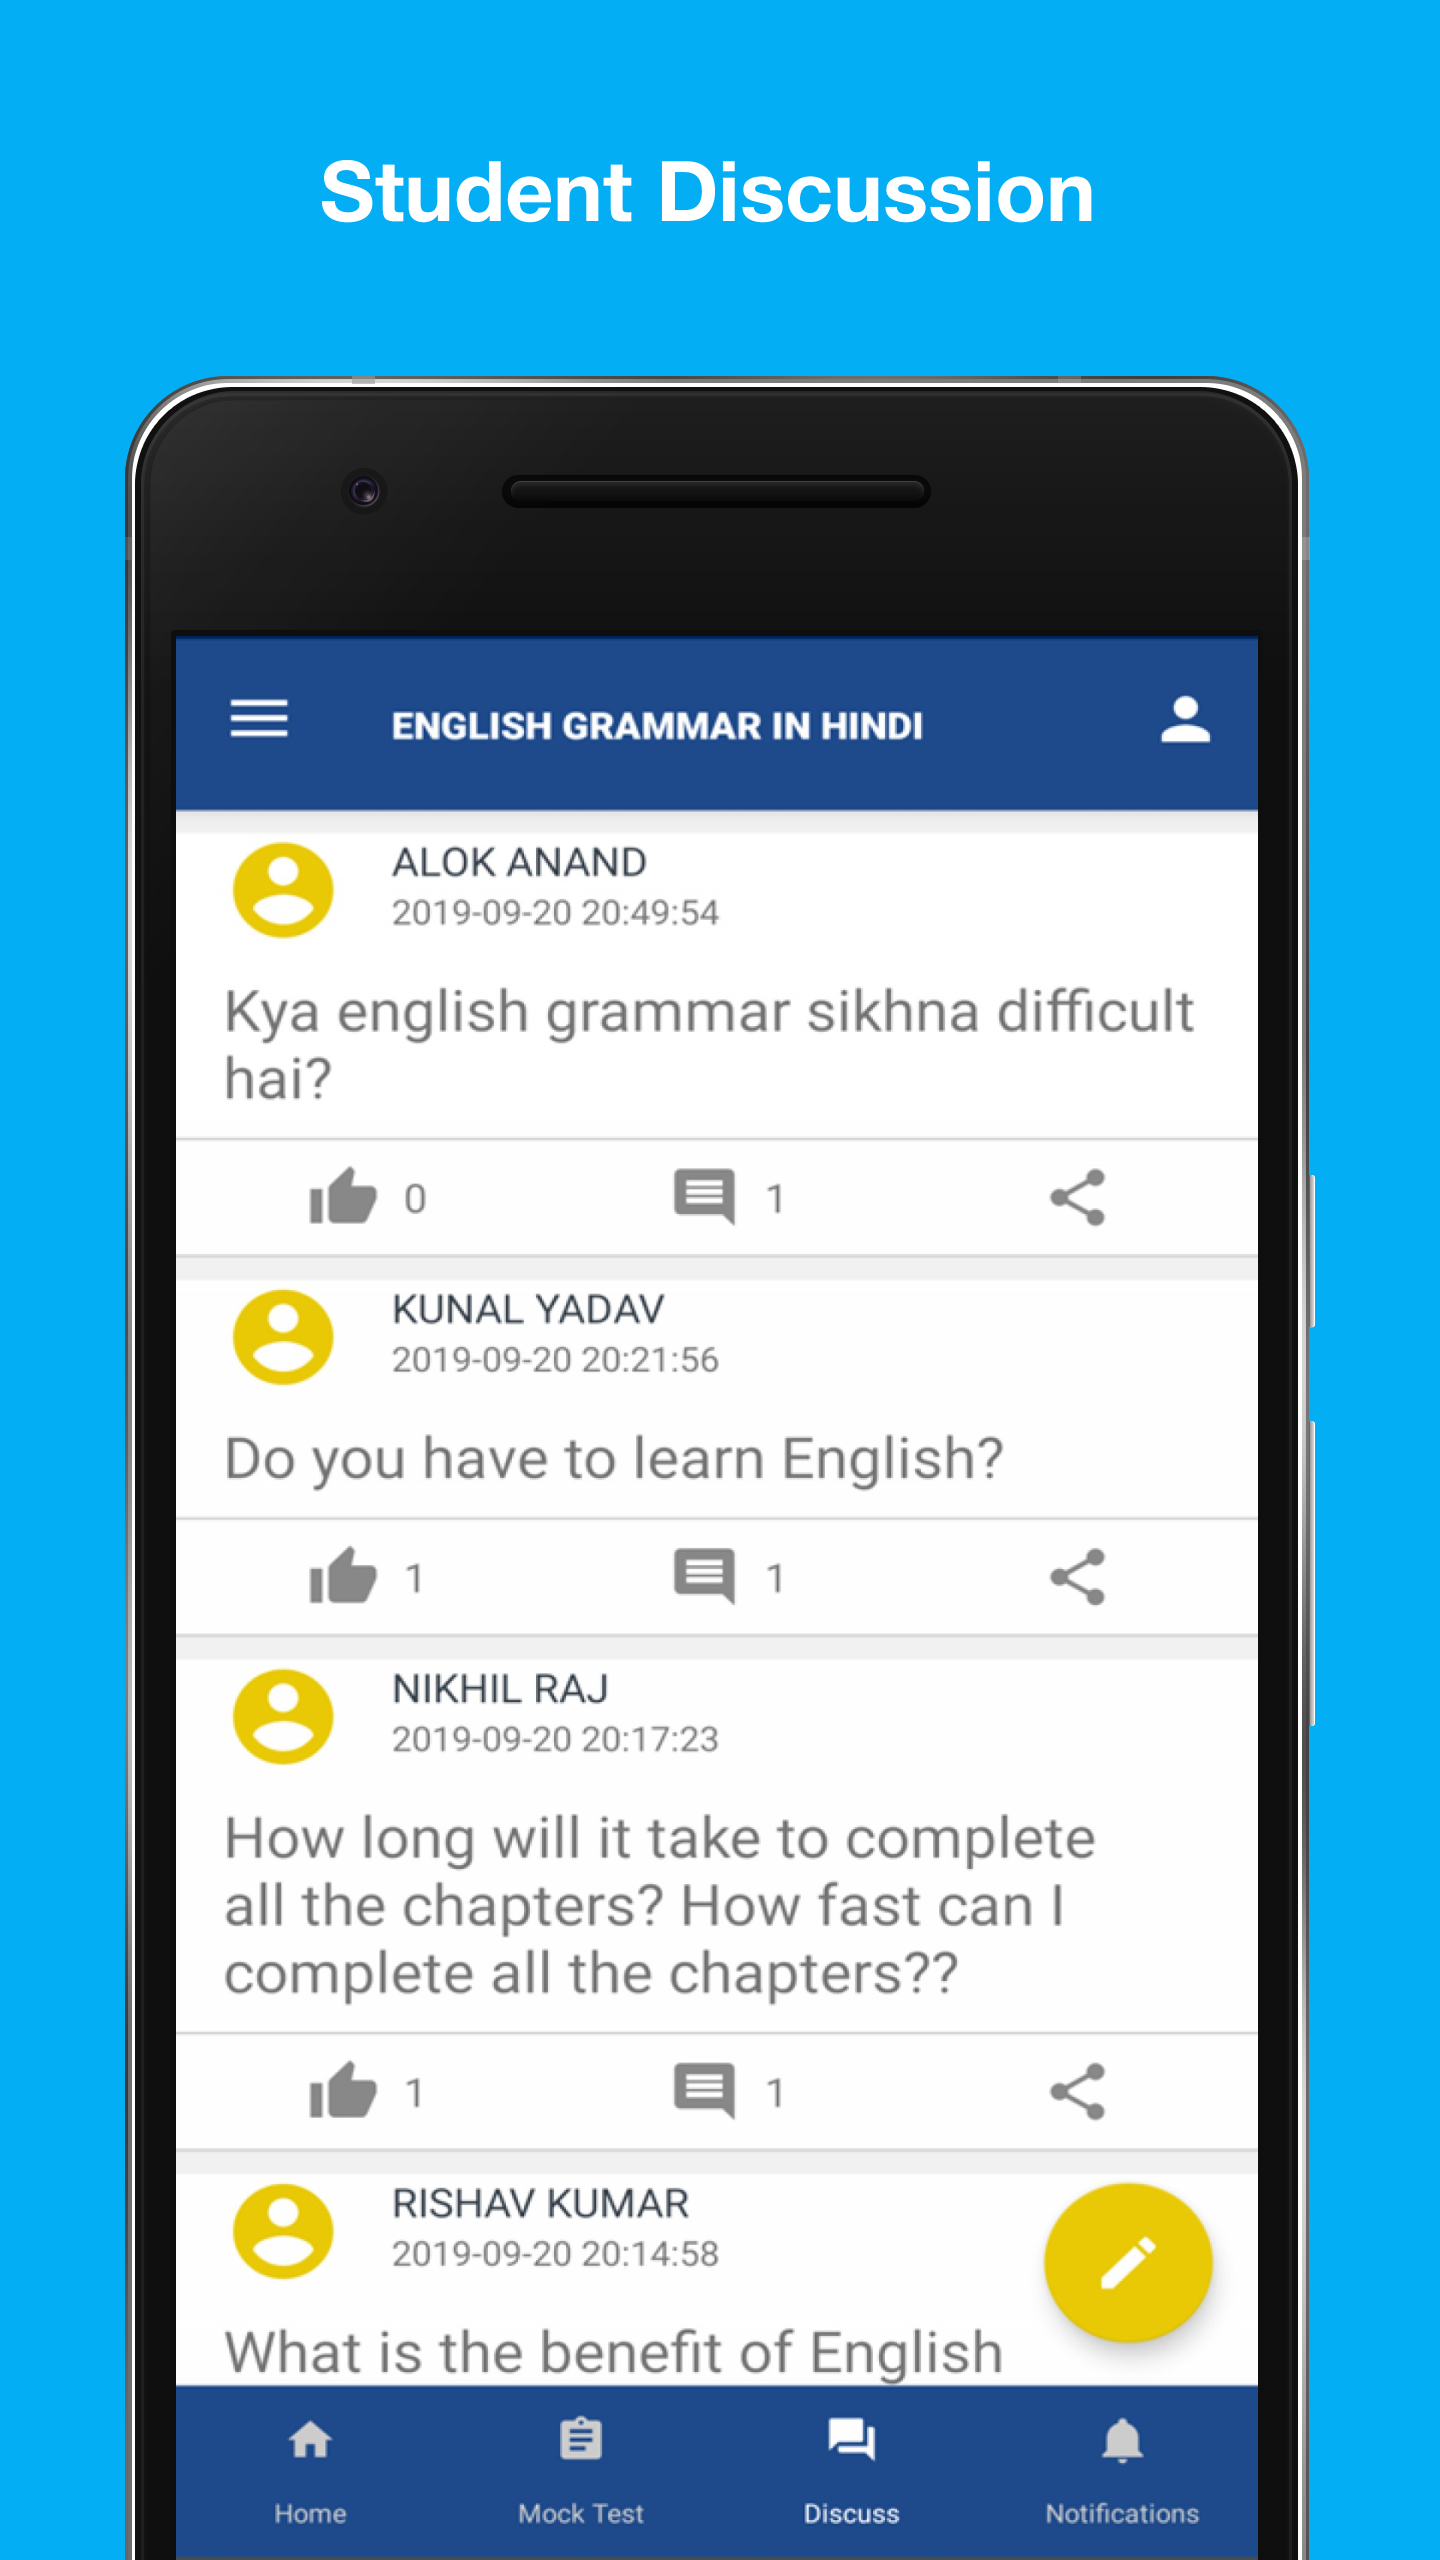 English Grammar in Hindi